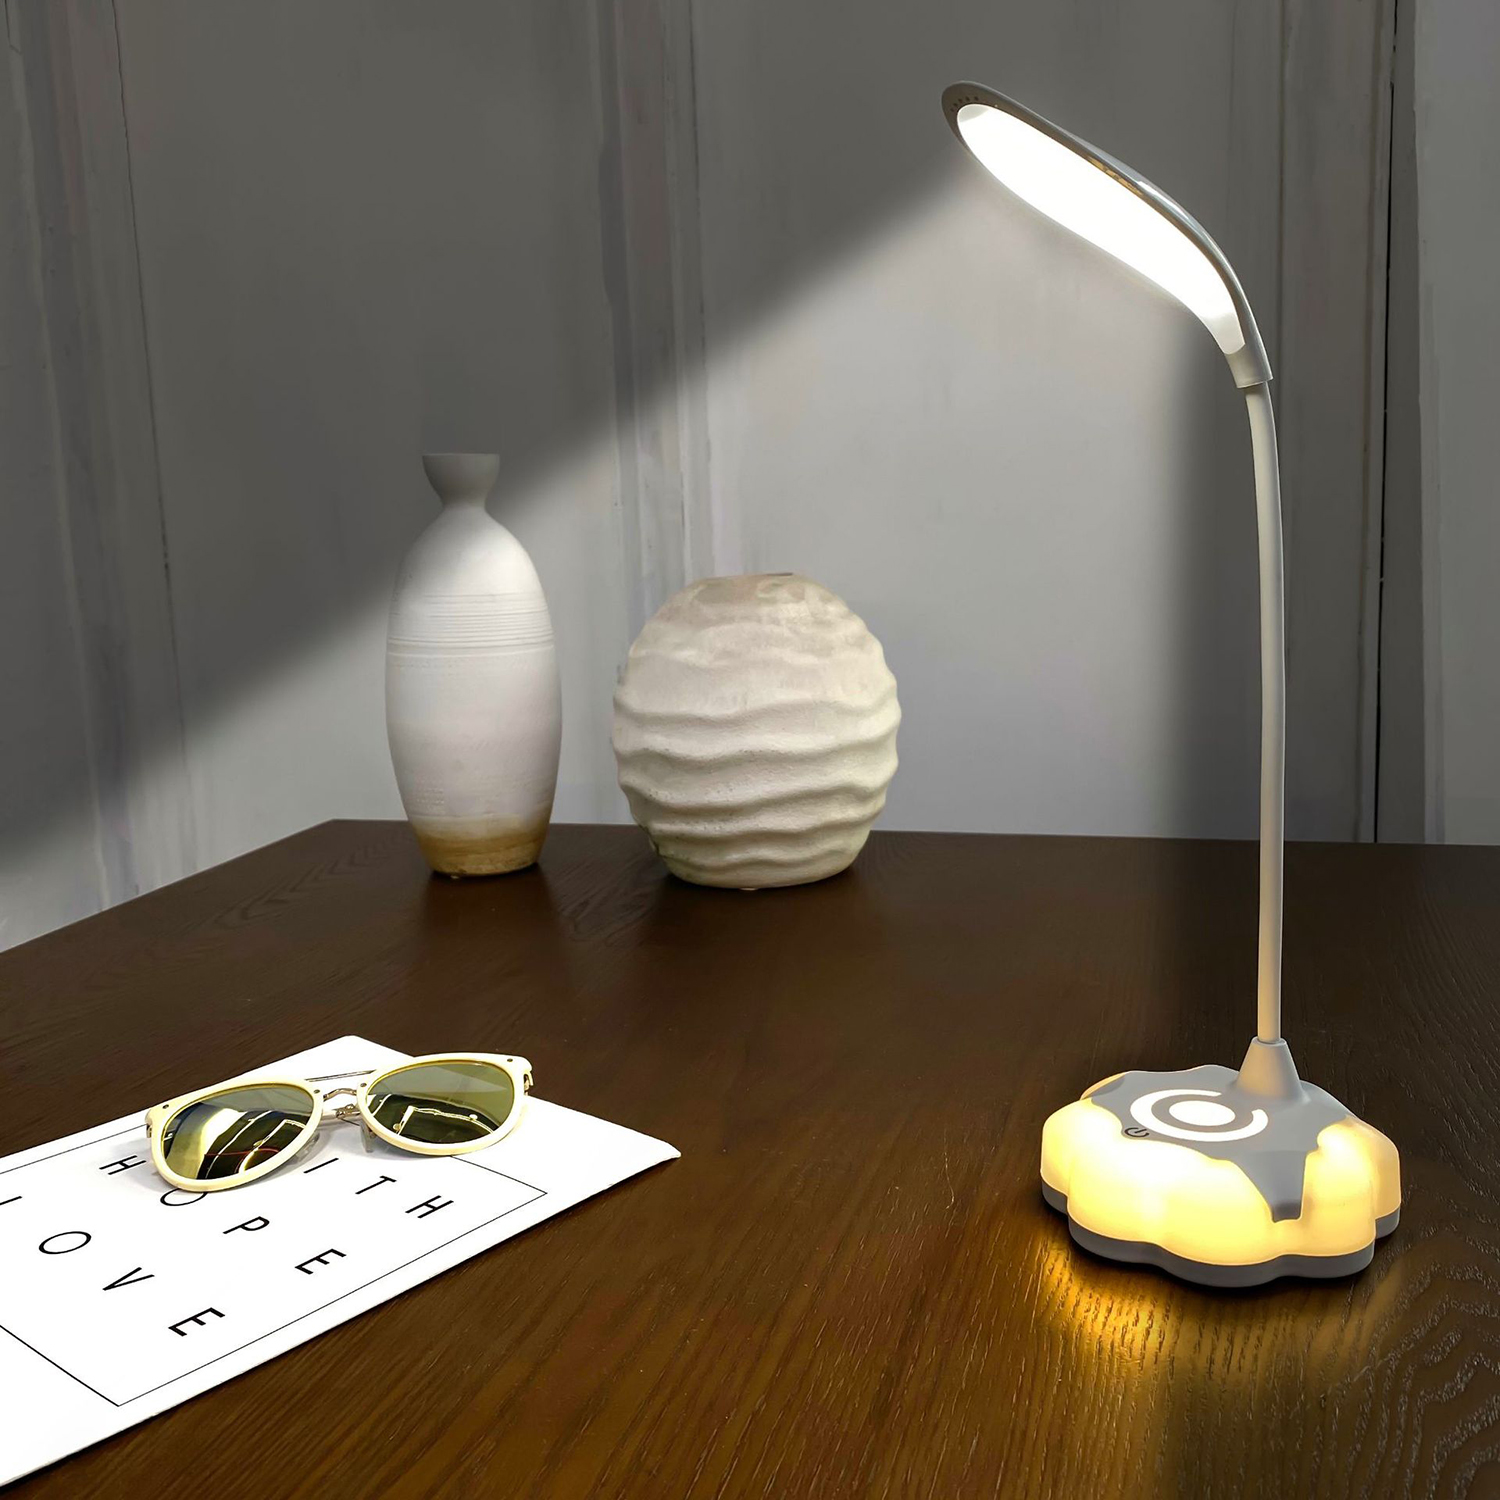 Clip led Table Lamp Study 5W Touch USB Rechargeable LED Reading Desk Lamp 5500K-6000K USB Table Light Dimmable Table Lamp